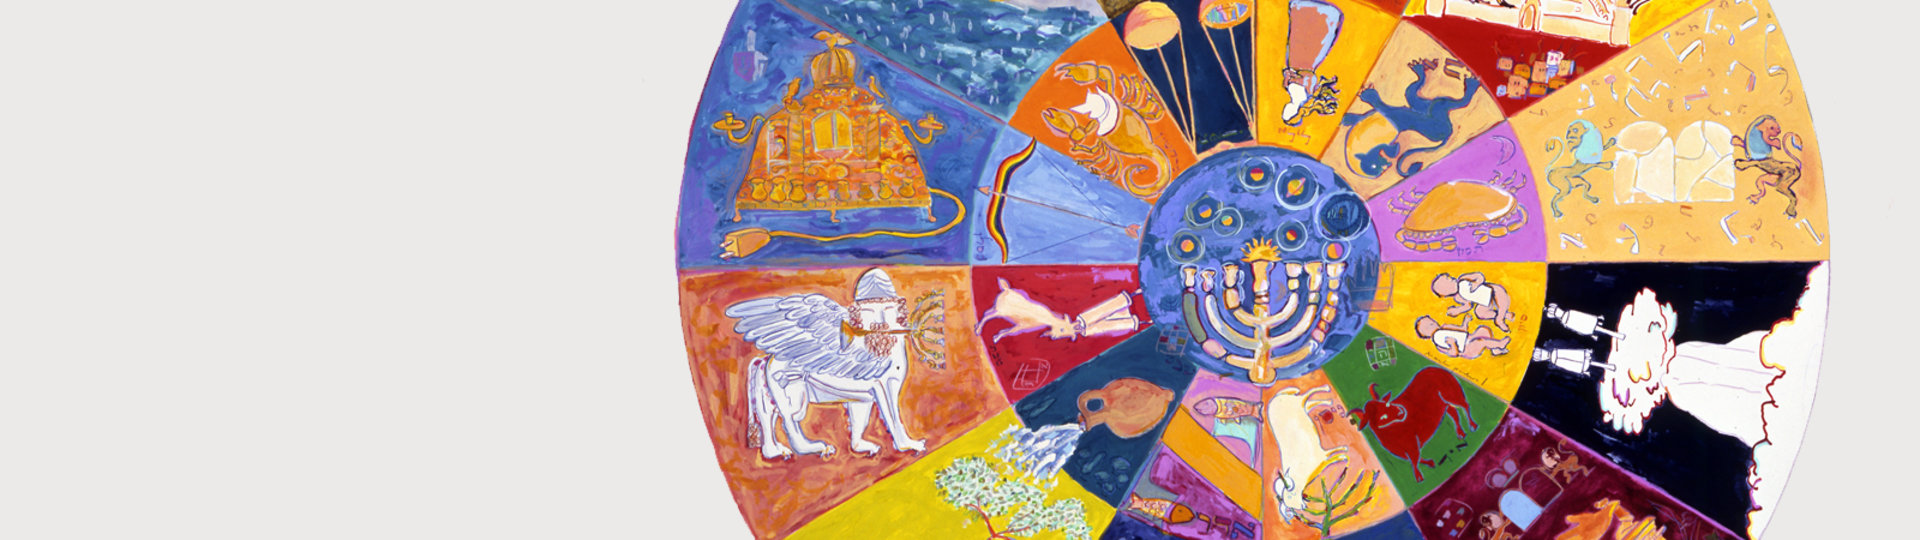 Mark Podwal's Zodiac Circle, 1995. Gouache, ink, and colored pencil on paper